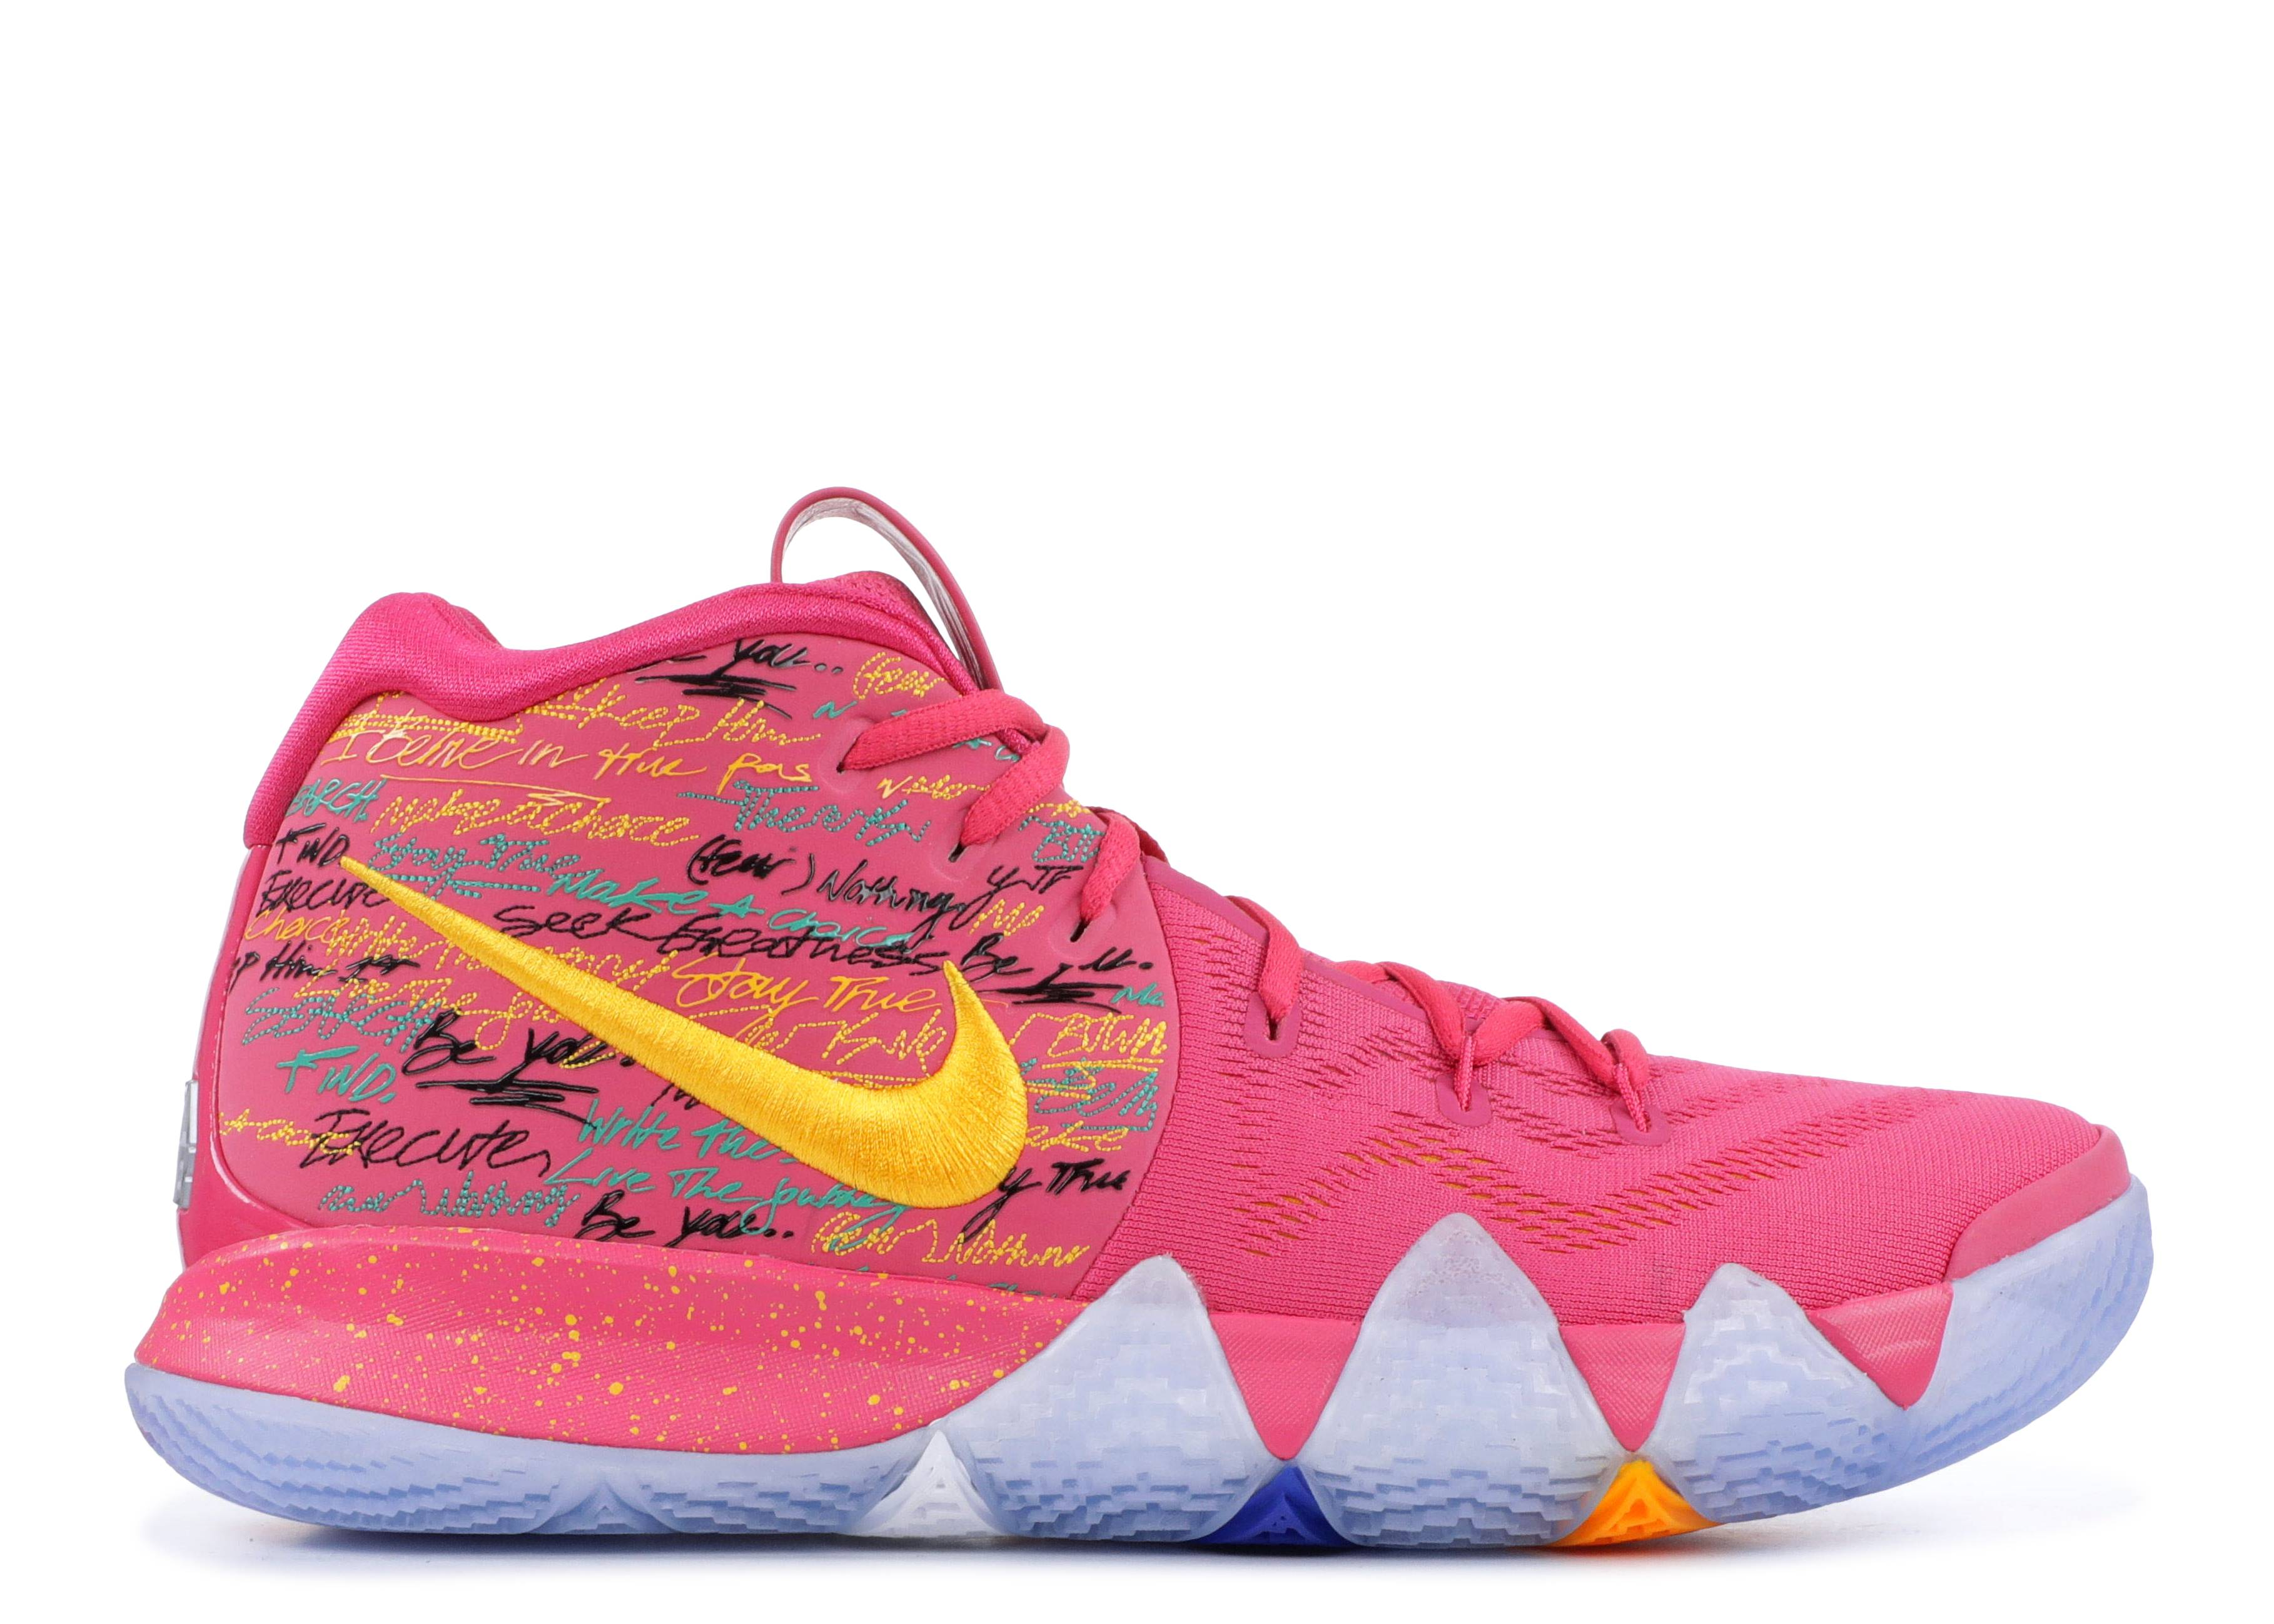 separation shoes d4434 8044b ... italy shopping kyrie 4 nba 2k18 friends and family nike 860844 868  watermelon uni gold ice